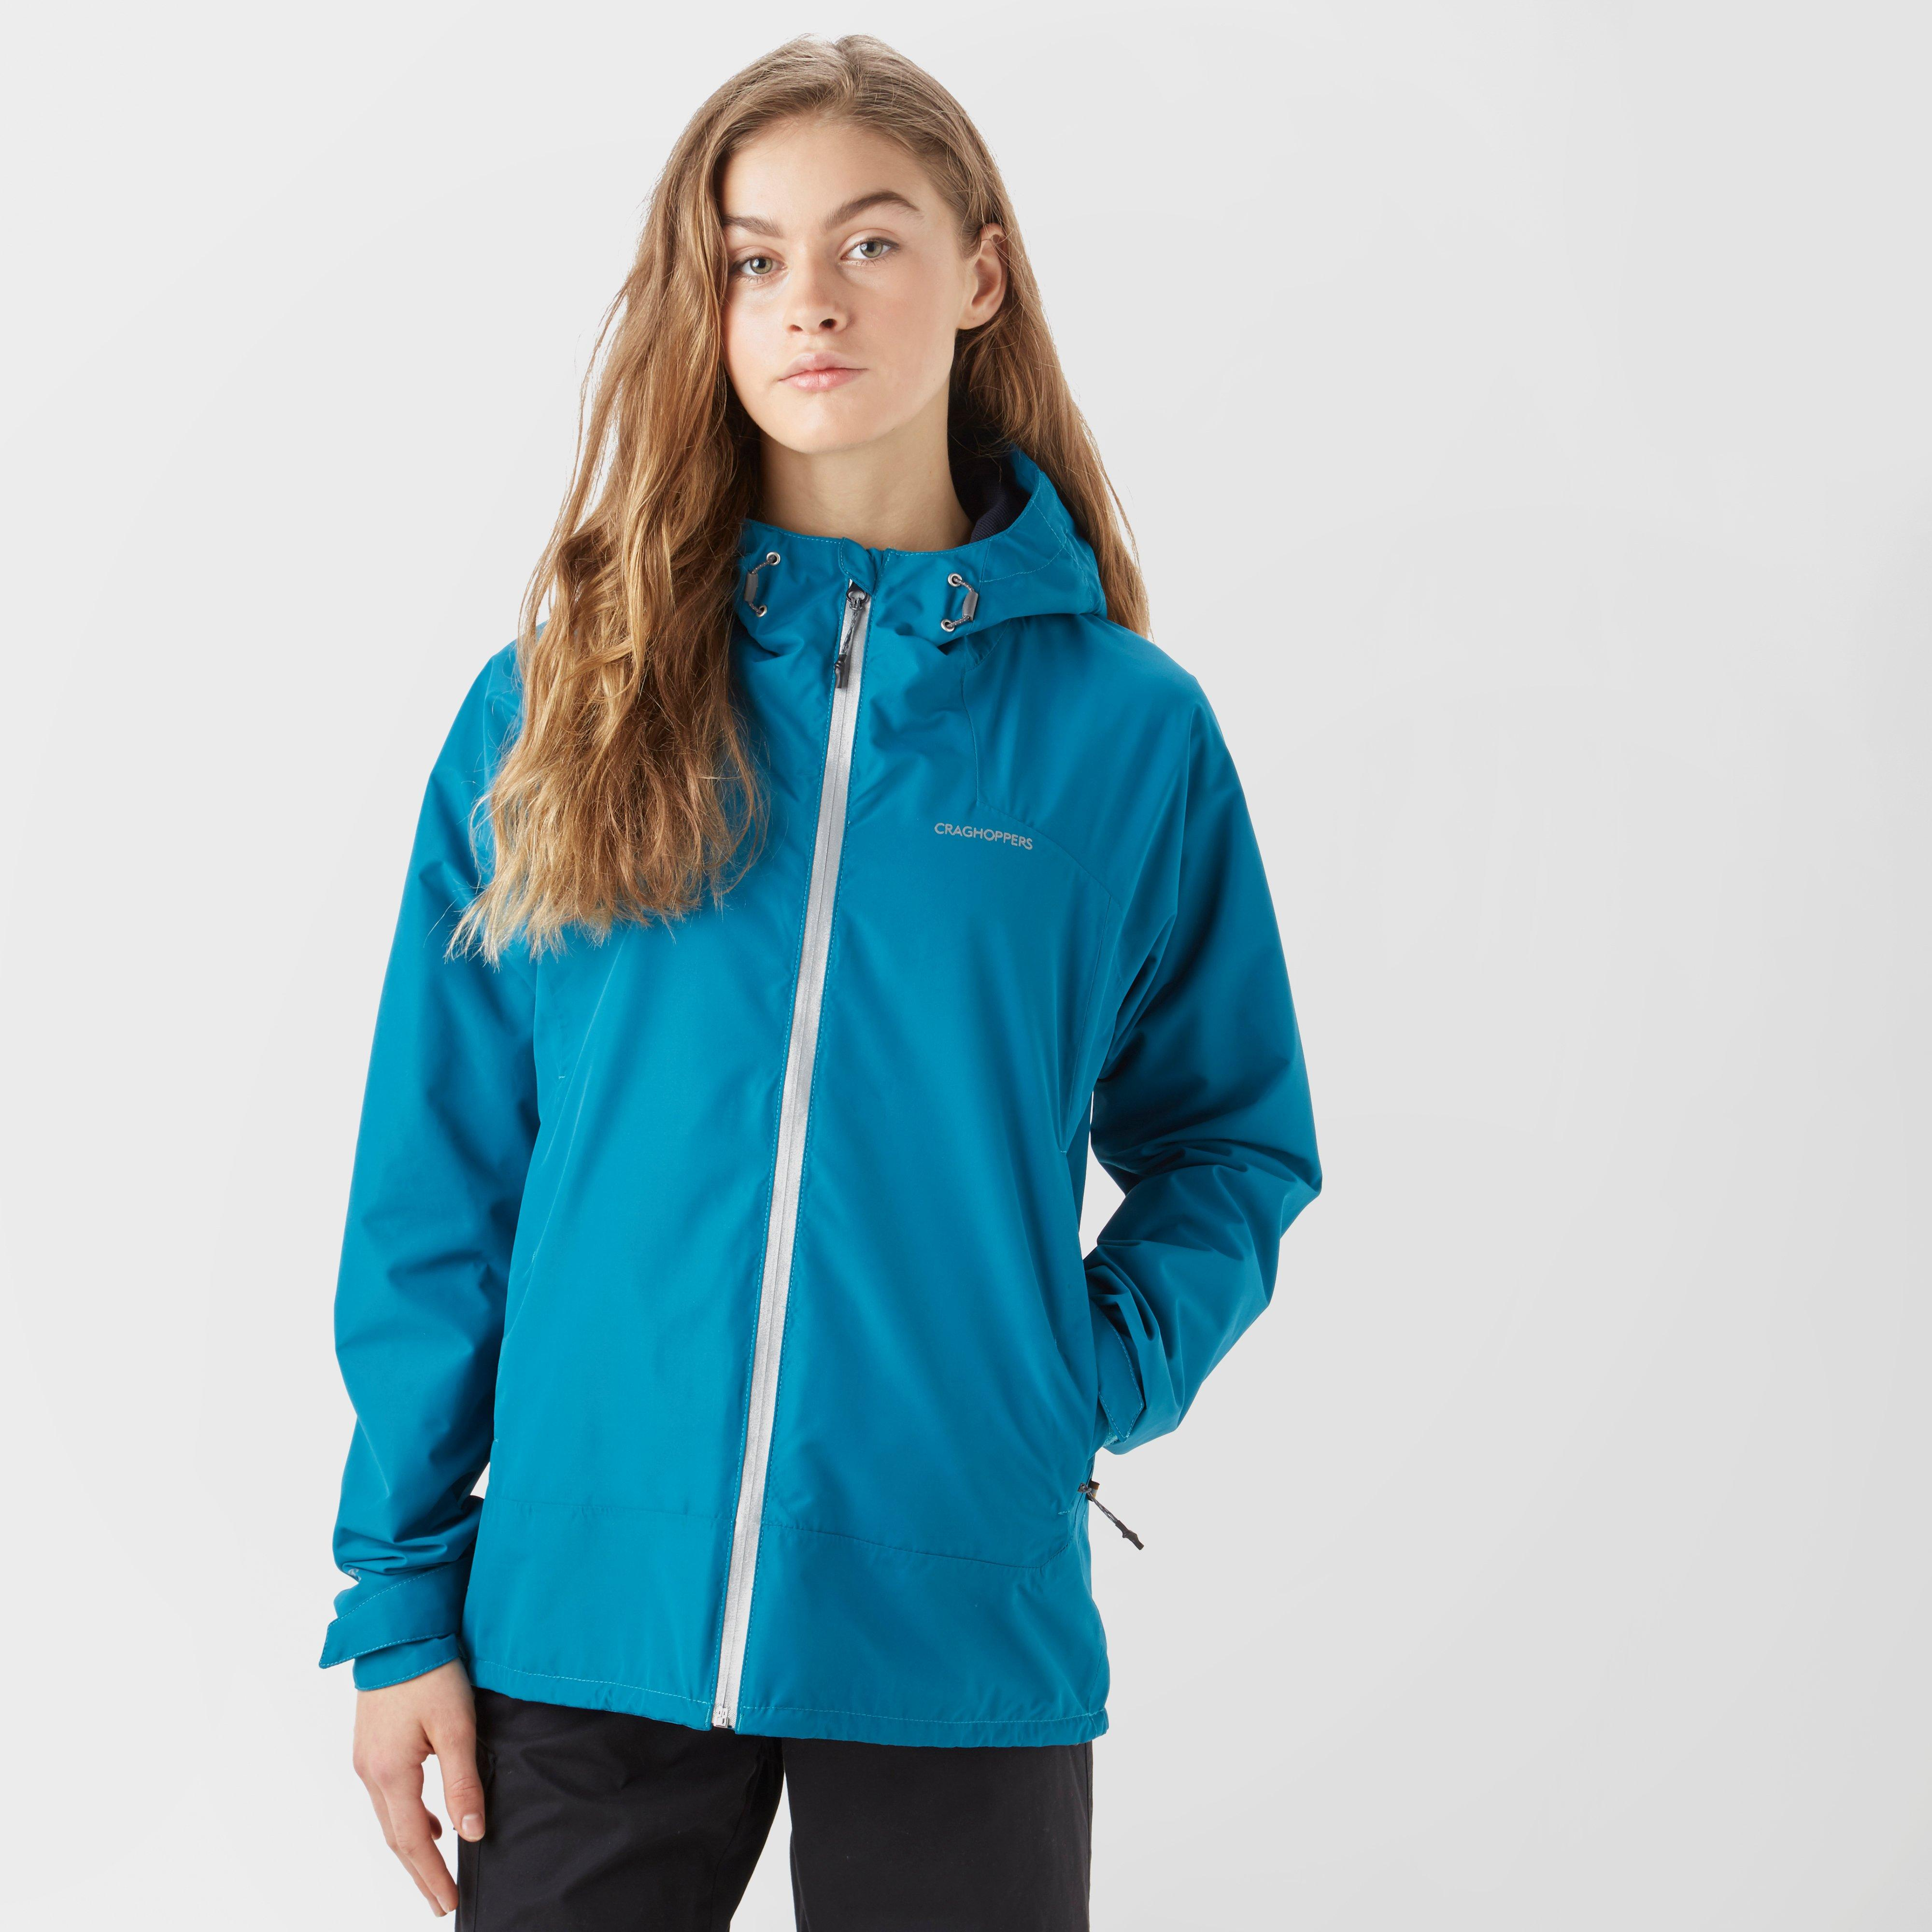 Craghoppers Women's Apex Jacket, Teal